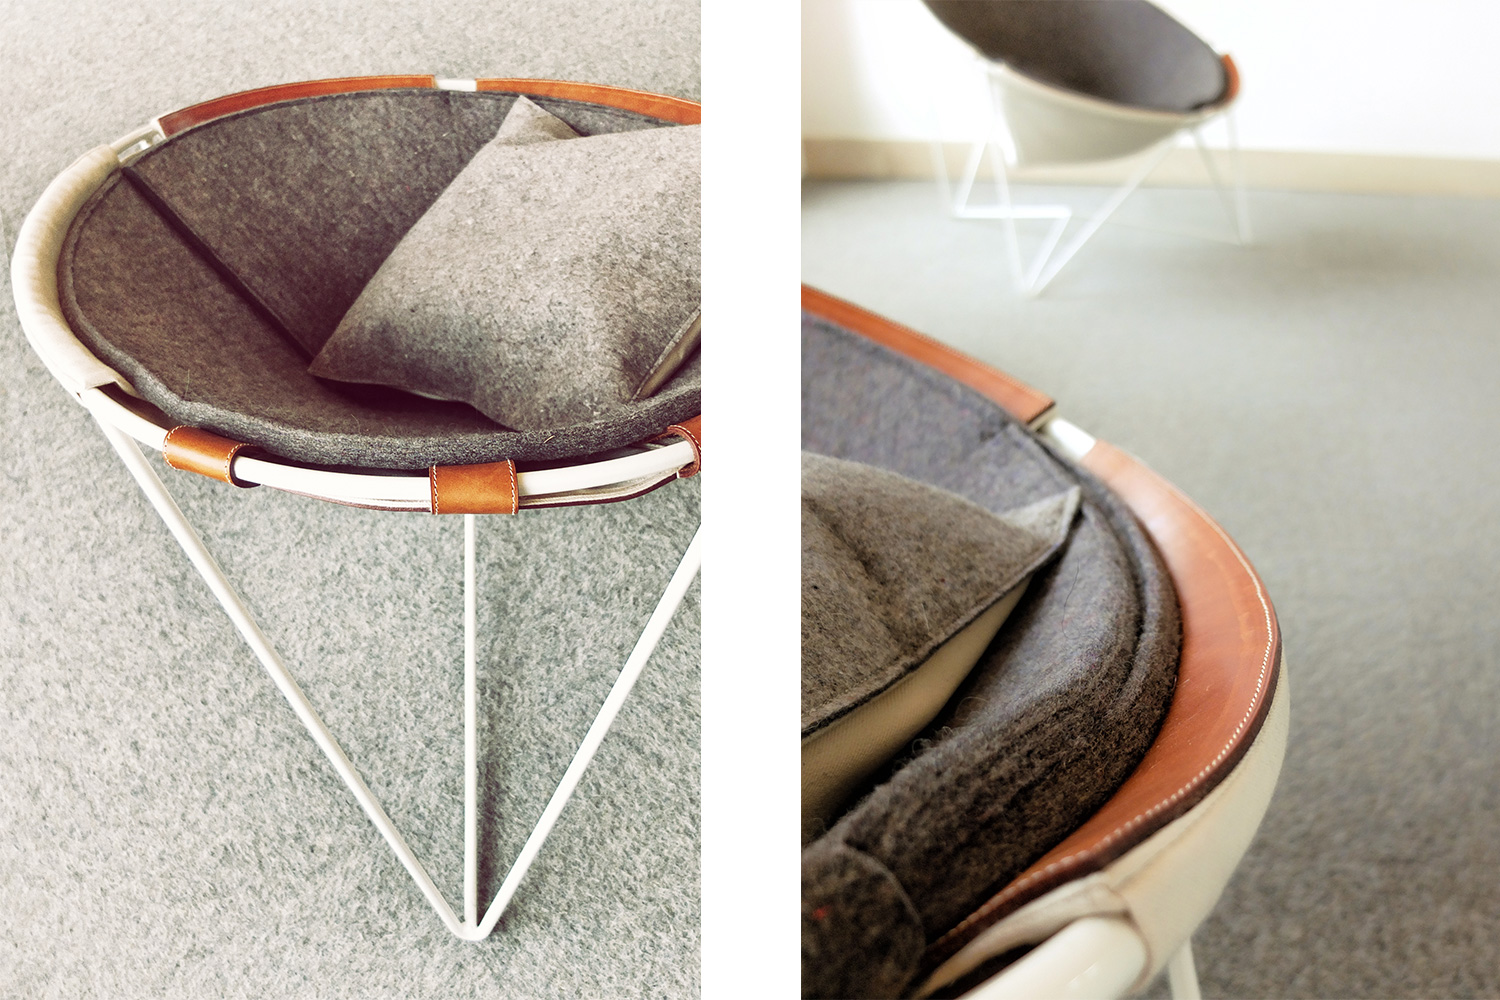 Detail of the seating of chairs made to measure for the hotel La ferme. Felt cover with white canvas and brown leather reinforcement. Metal structure in white stem